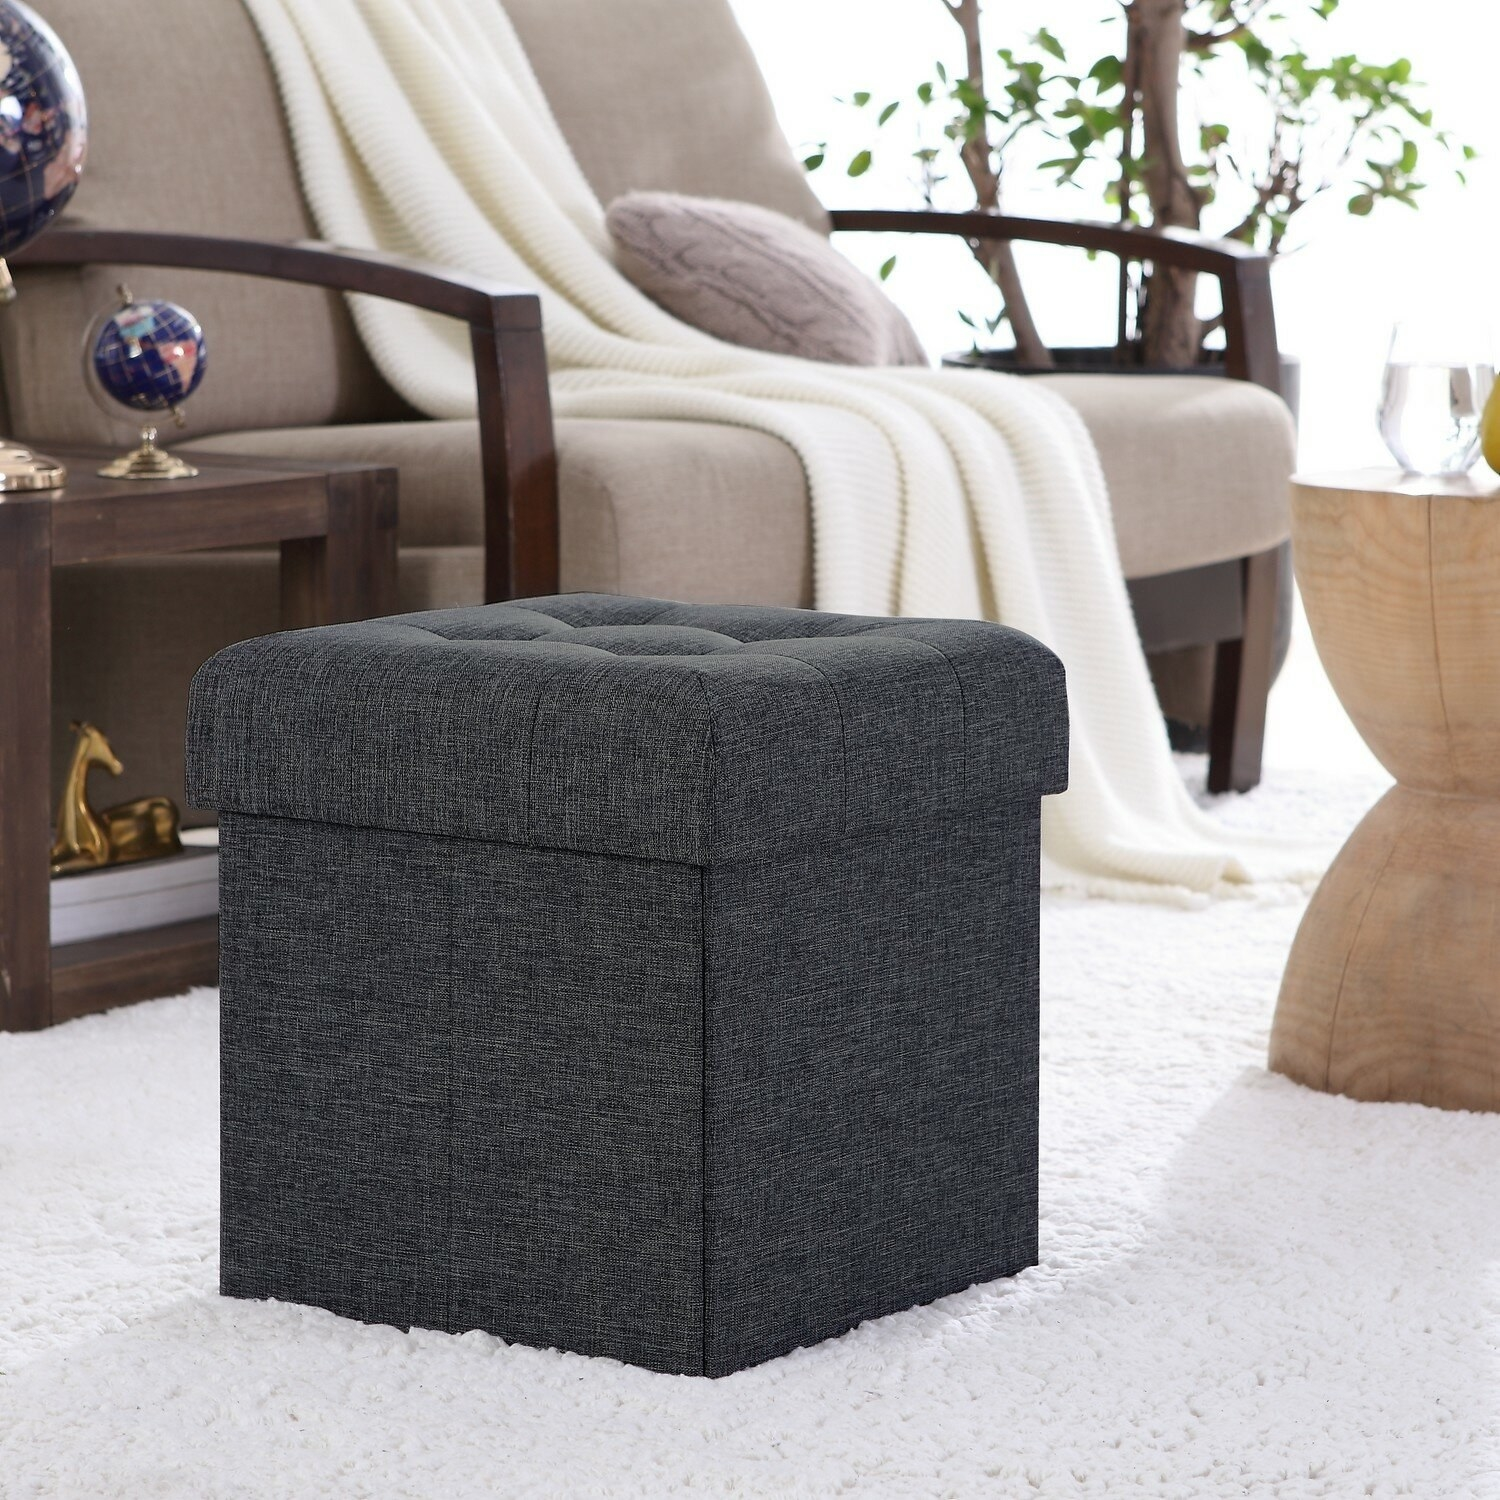 The black Lambertville Foldable Tufted Square Cube Foot Rest Storage Ottoman in a living room